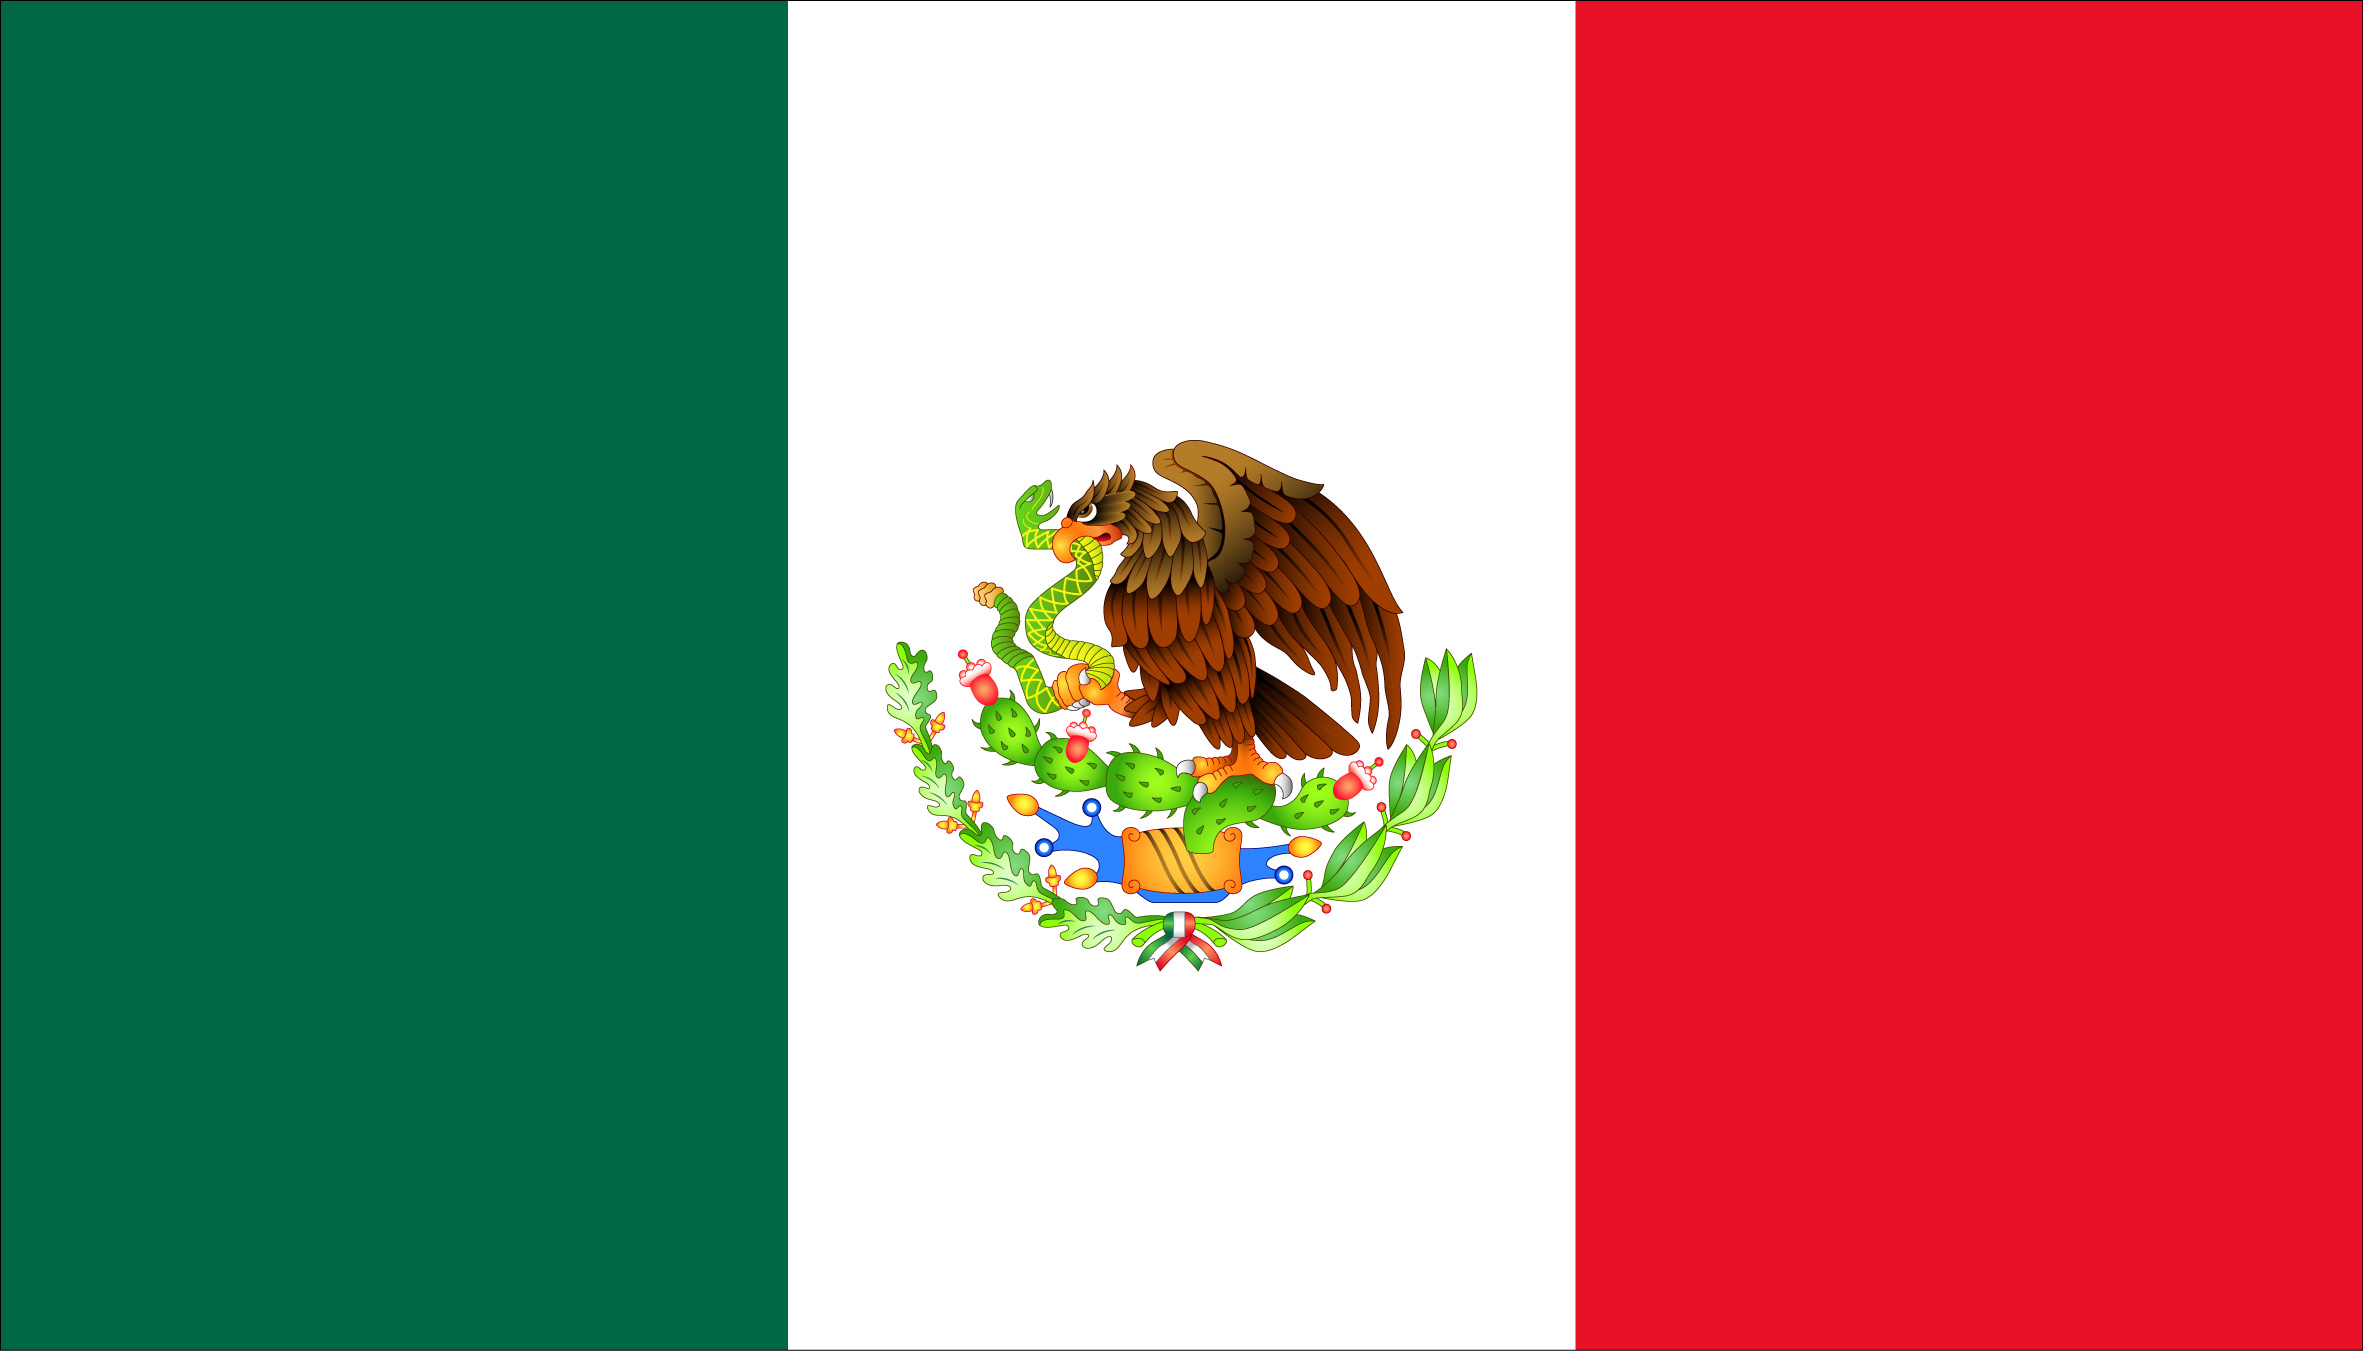 Mexican flag clipart free image royalty free stock Free Mexican Flag, Download Free Clip Art, Free Clip Art on ... image royalty free stock